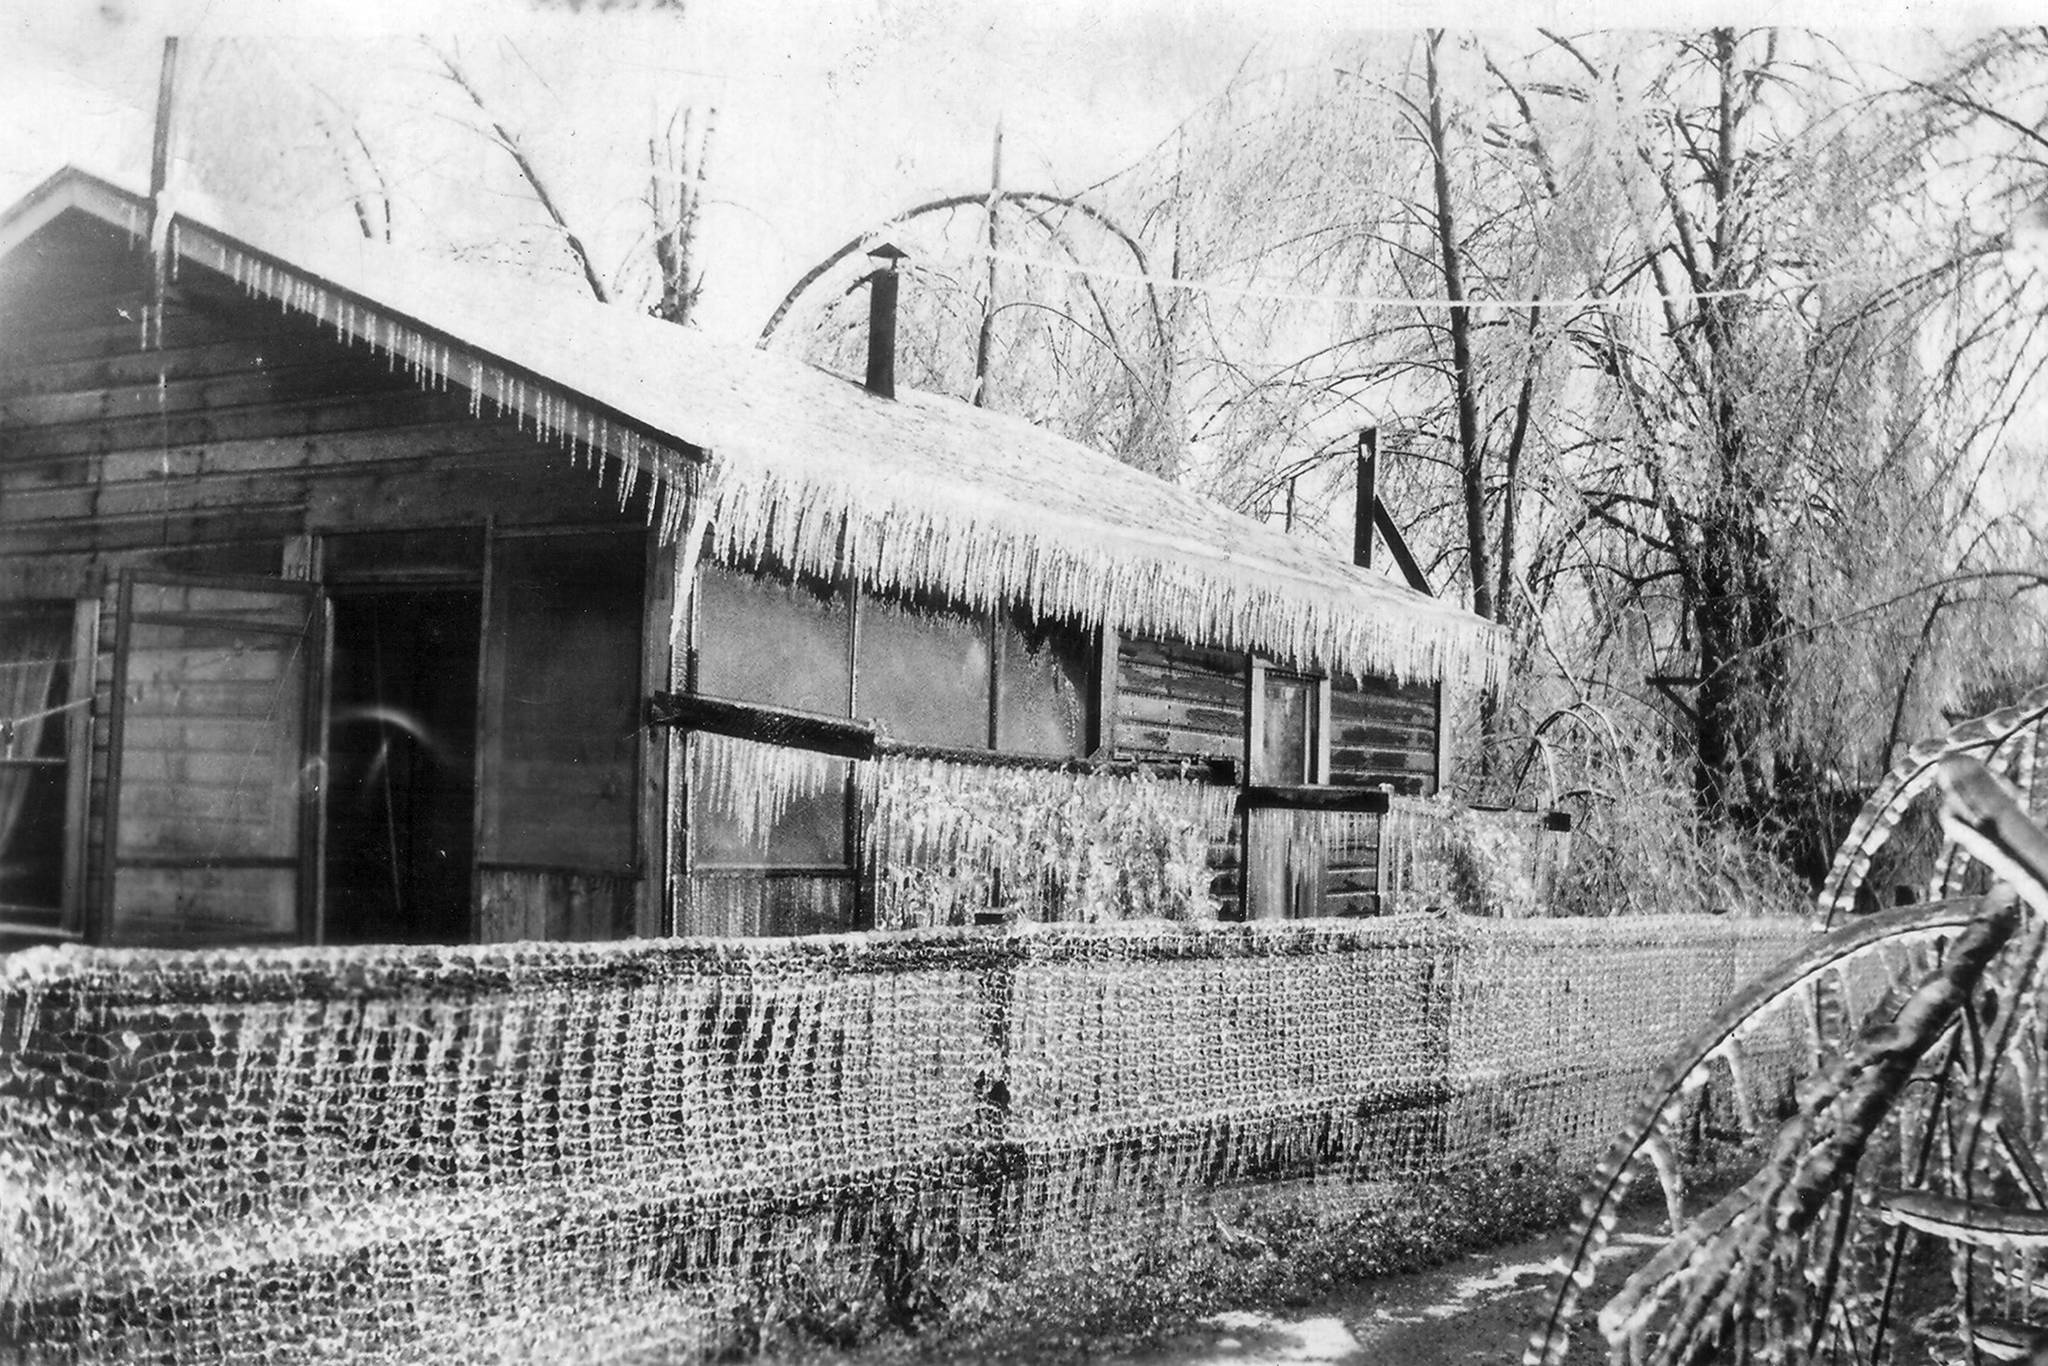 Pictures show how the ice storm of 1935 paralyzed the Fraser Valley